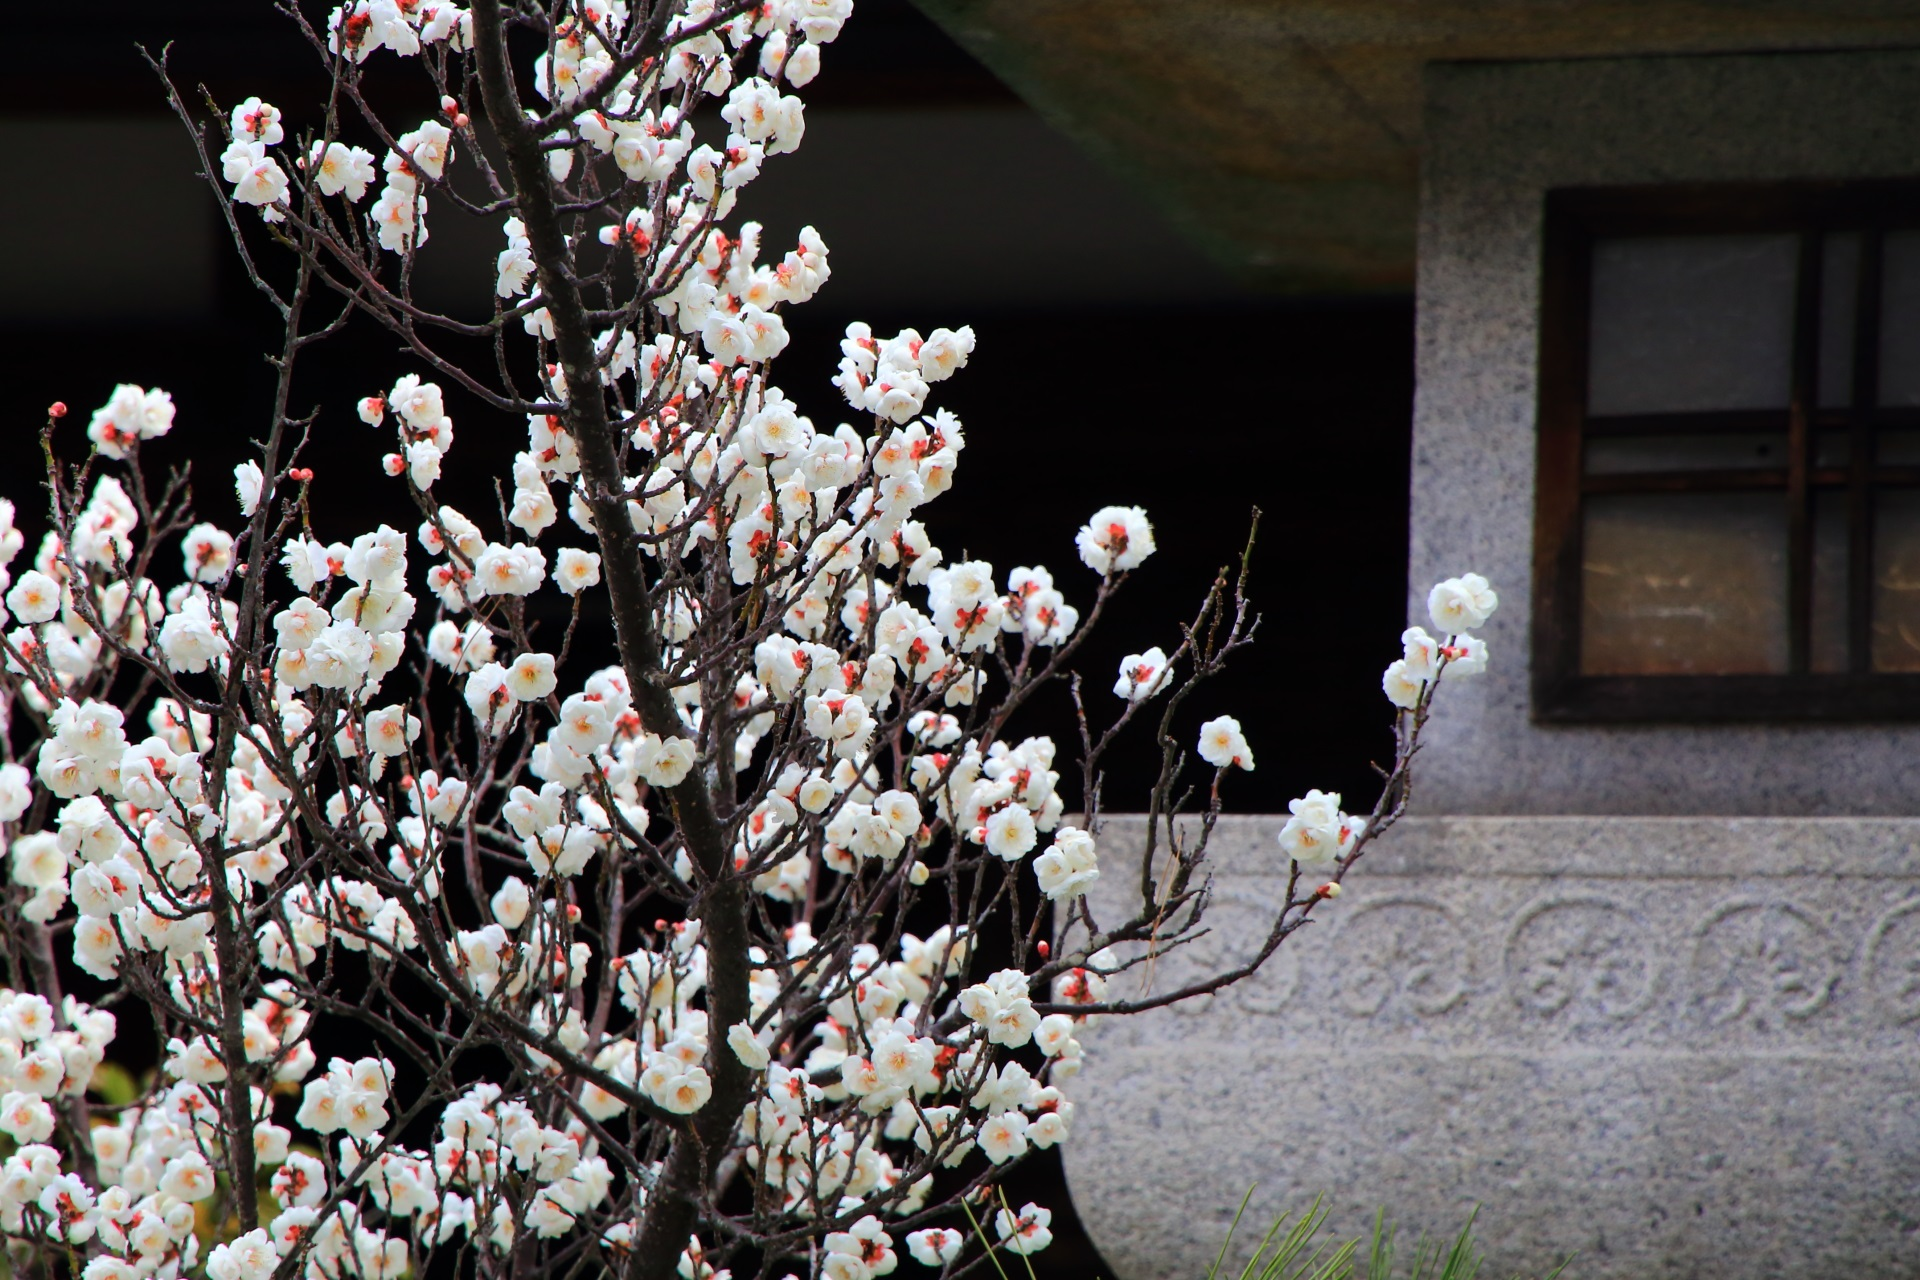 plumblossom Seiryo-ji Temple in kyoto,Japan